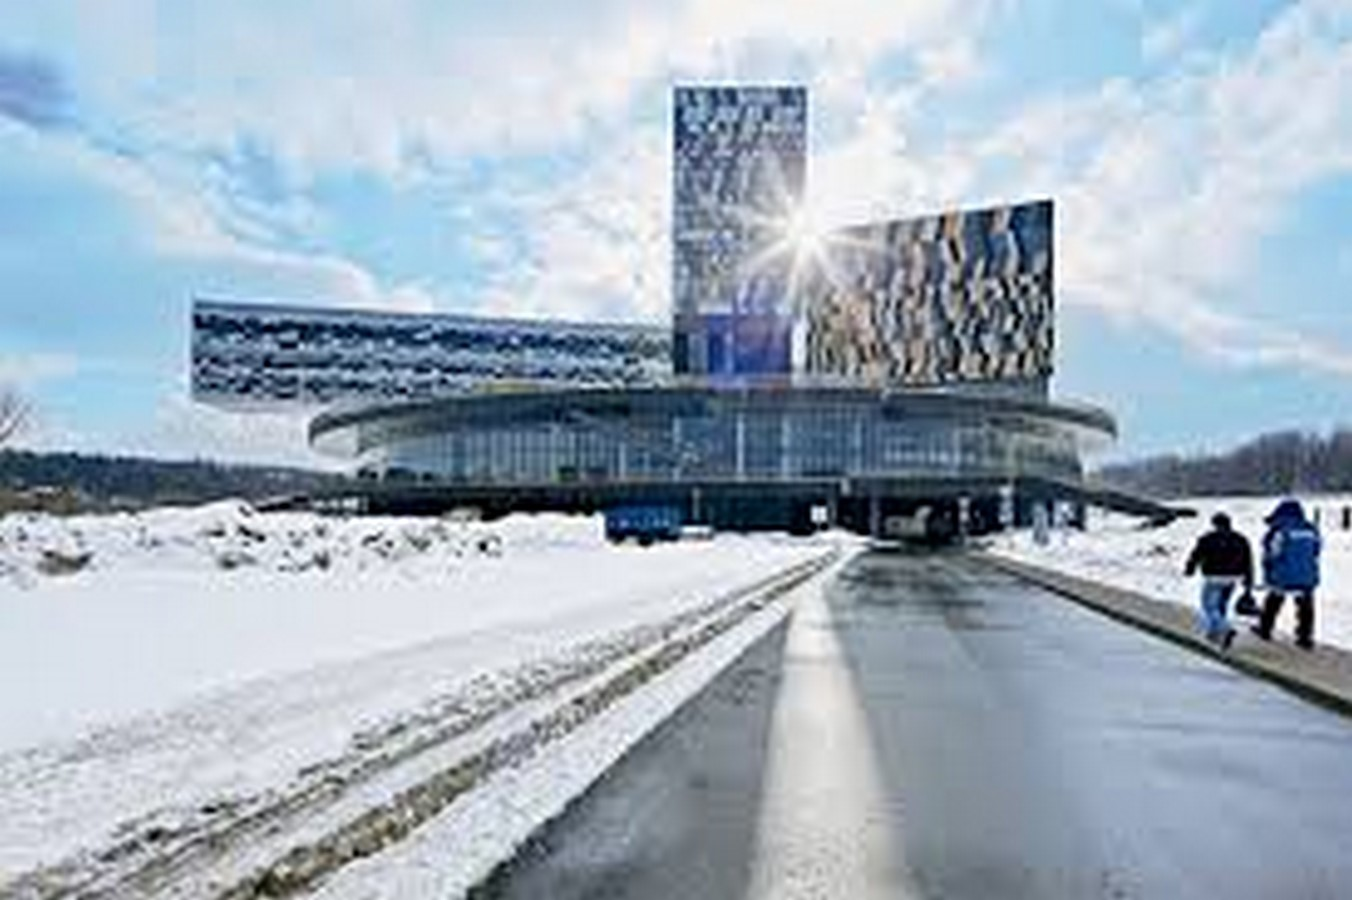 Moscow School of Management, Skolkovo, Russia by David Adjaye- Design inspired by Geometric Abstract Artwork - Sheet1